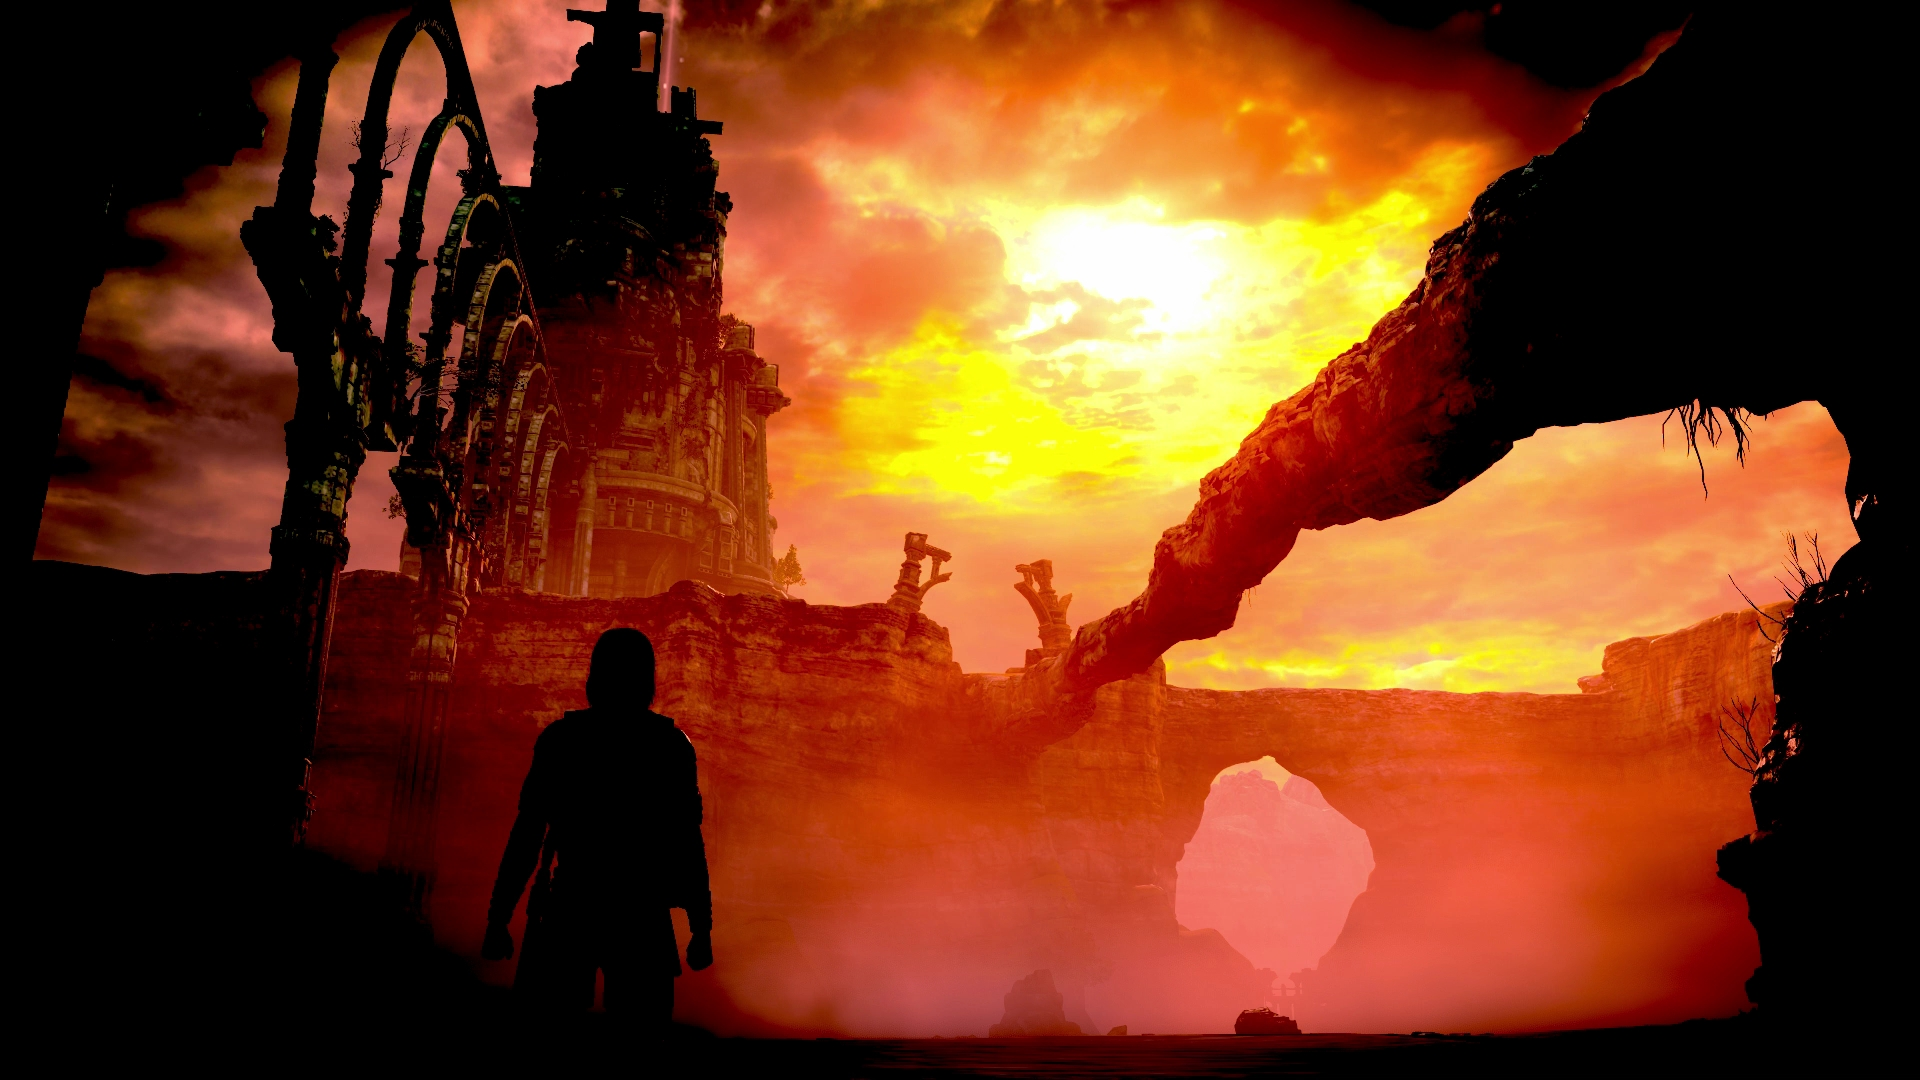 Shadow of the Colossus Remake Photo Mode Image 6